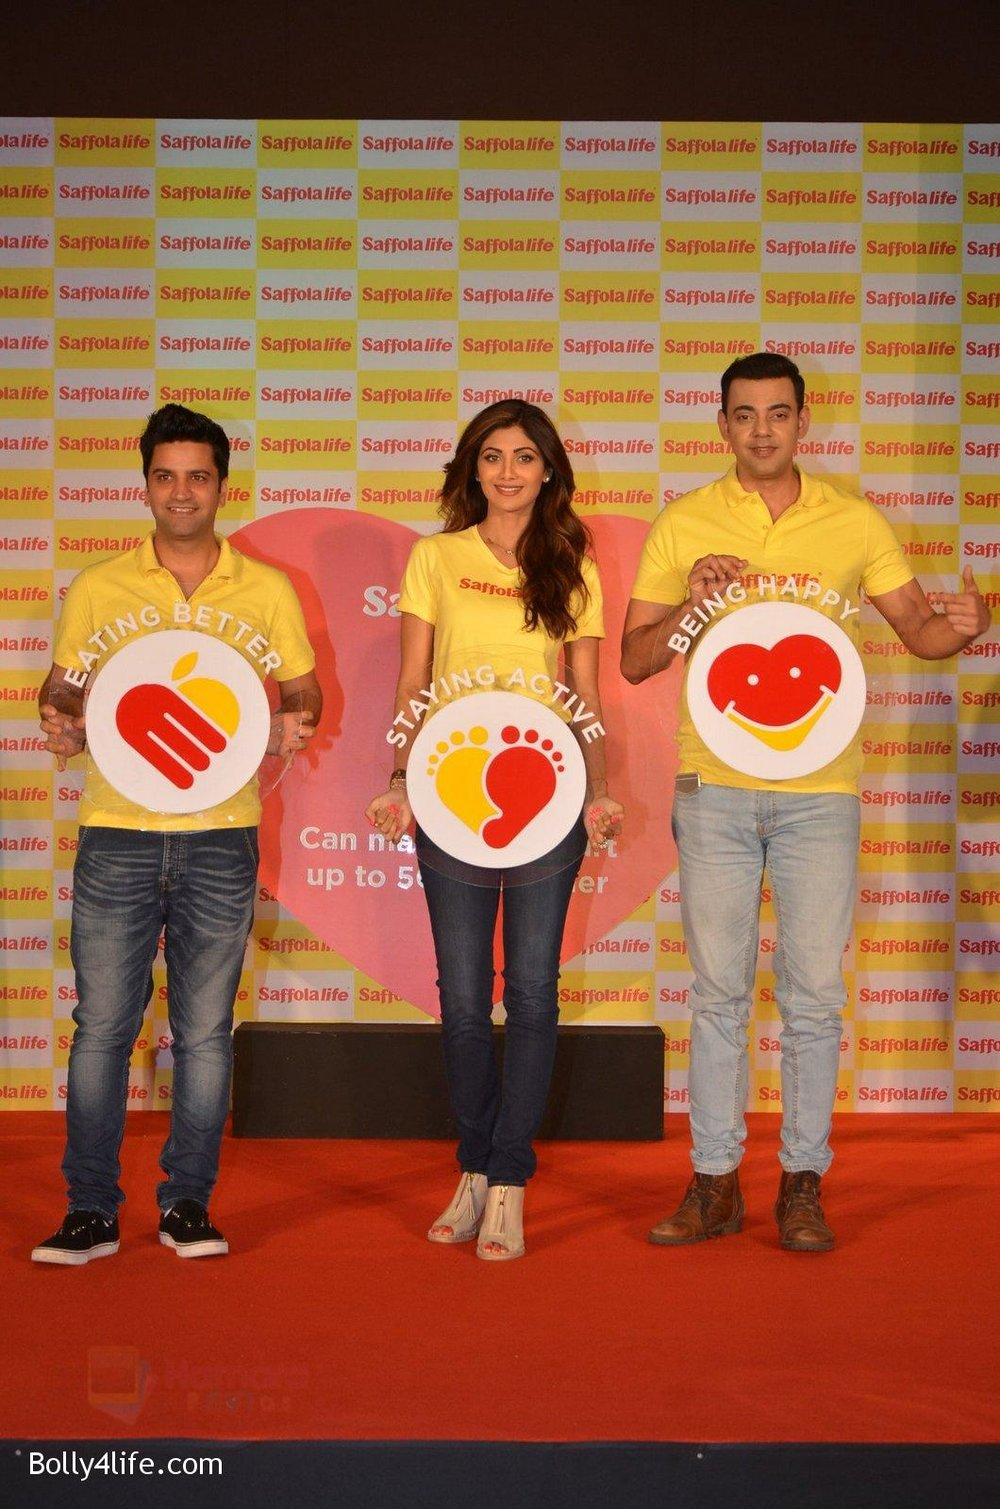 Shilpa-Shetty-Kunal-Kapur-Cyrus-Sahukar-during-the-World-Heart-Day-program-organized-by-Saffola-Life-in-Mumbai-on-28th-Sept-2016-51.jpg